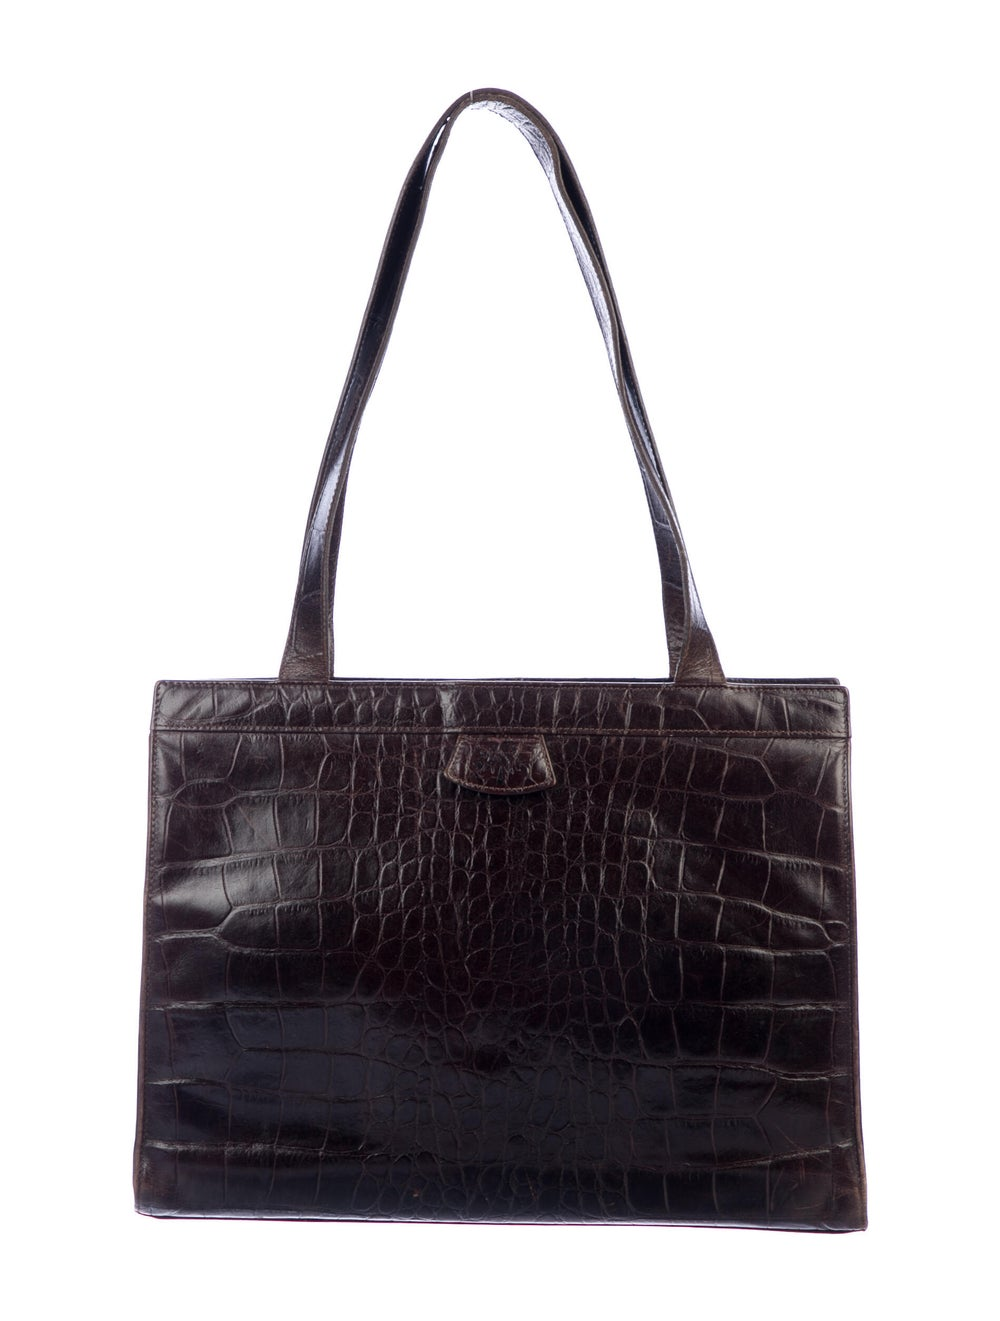 Mulberry Embossed Leather Tote Brown - image 4